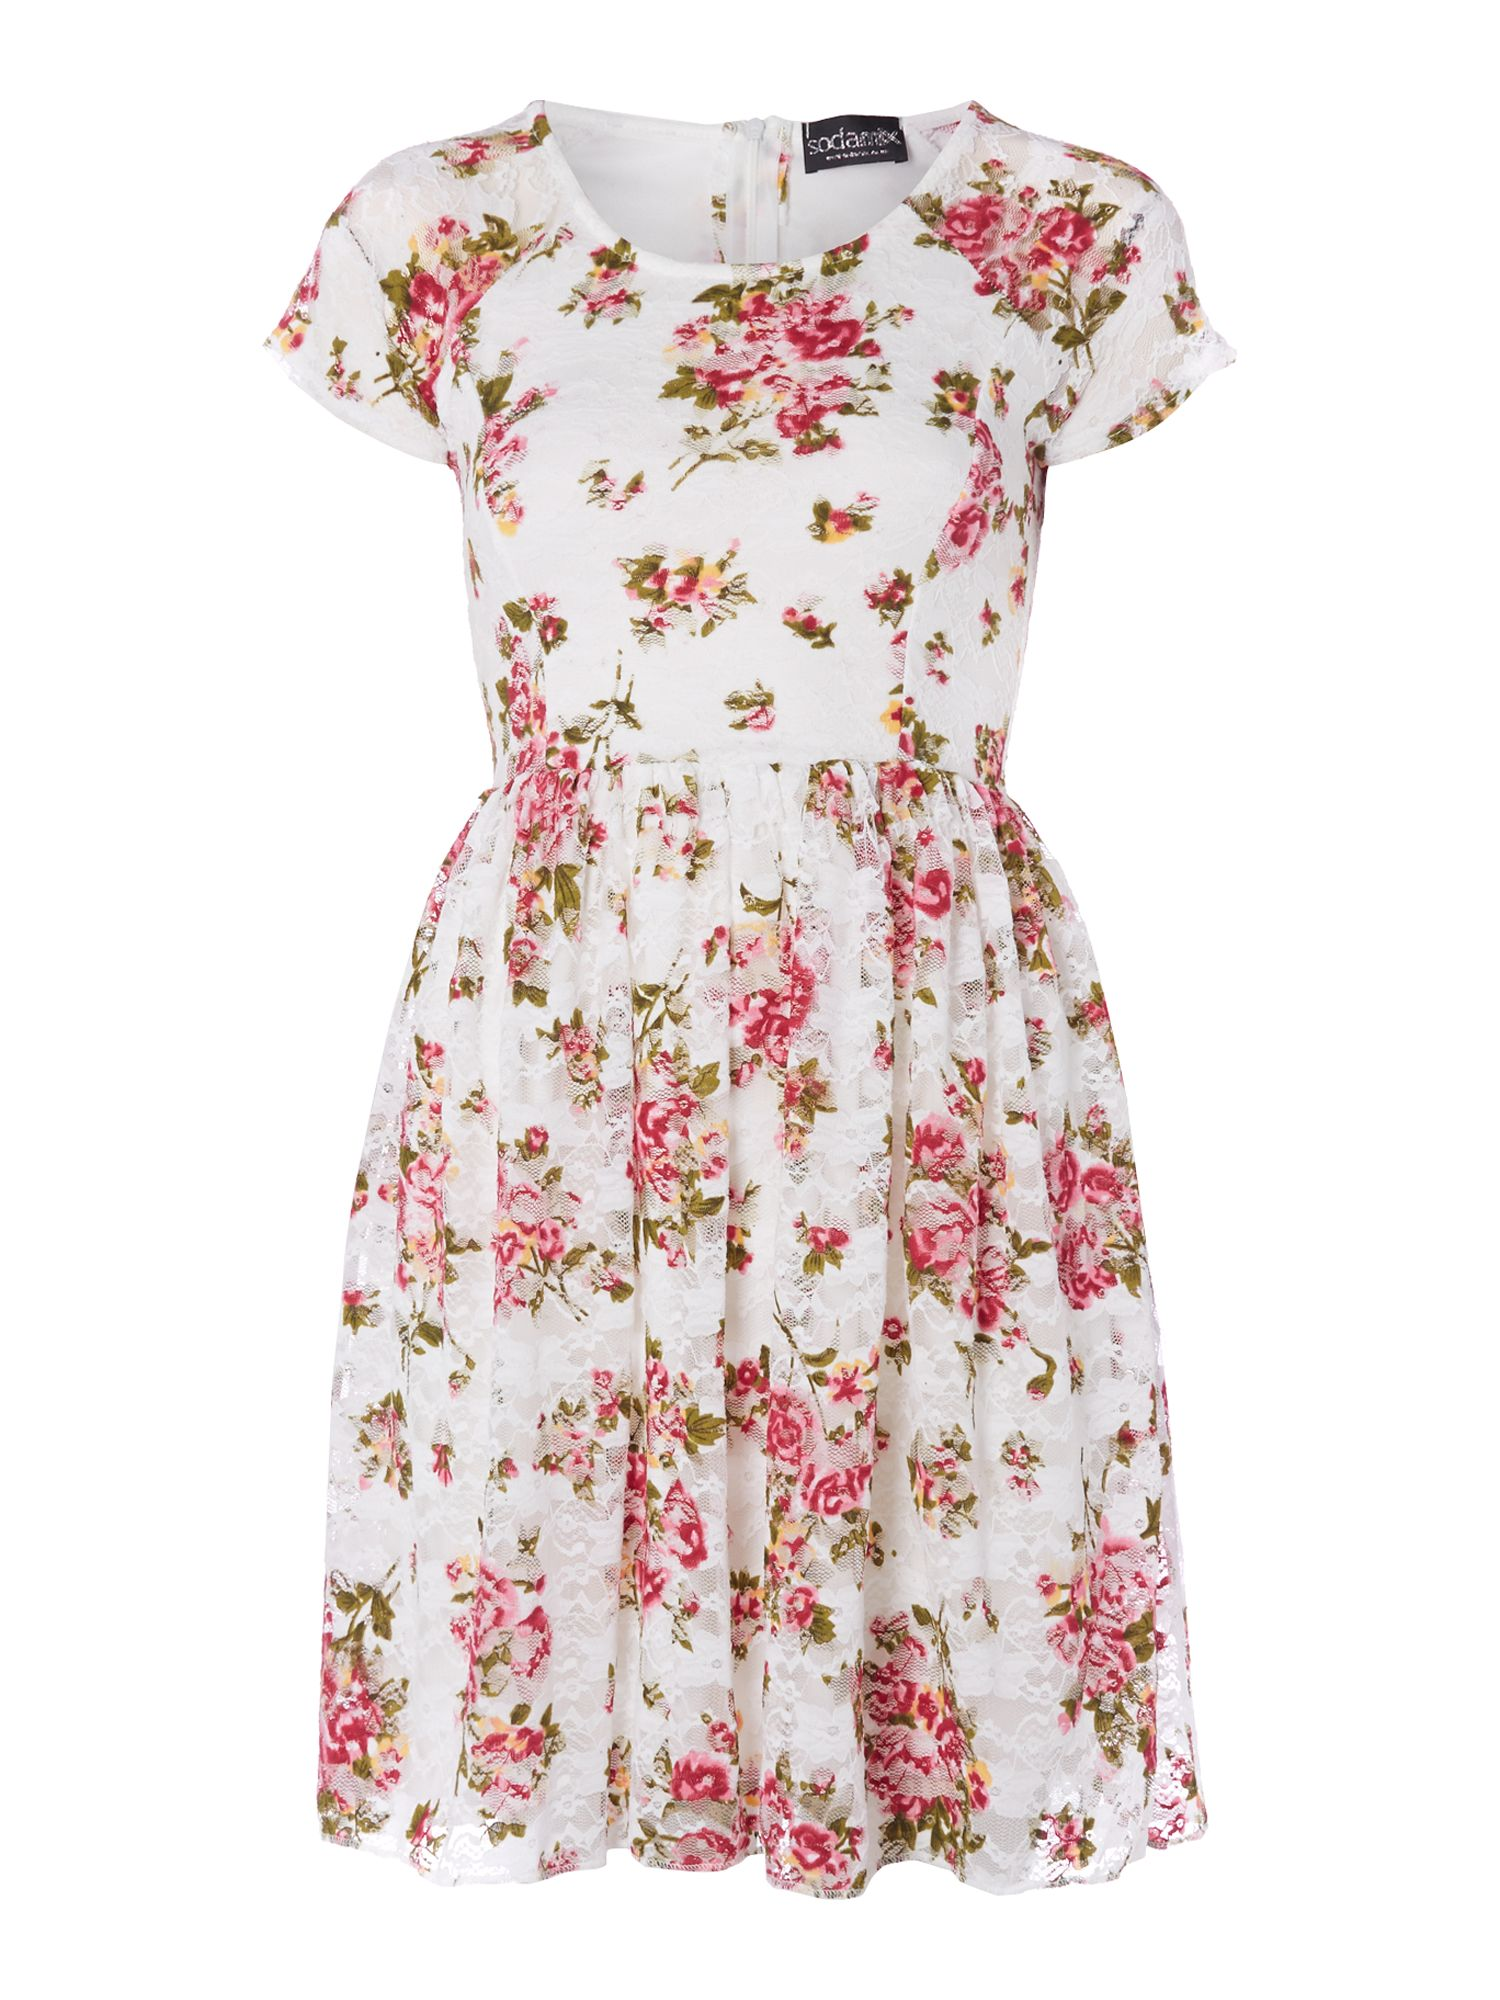 red cream floral dress